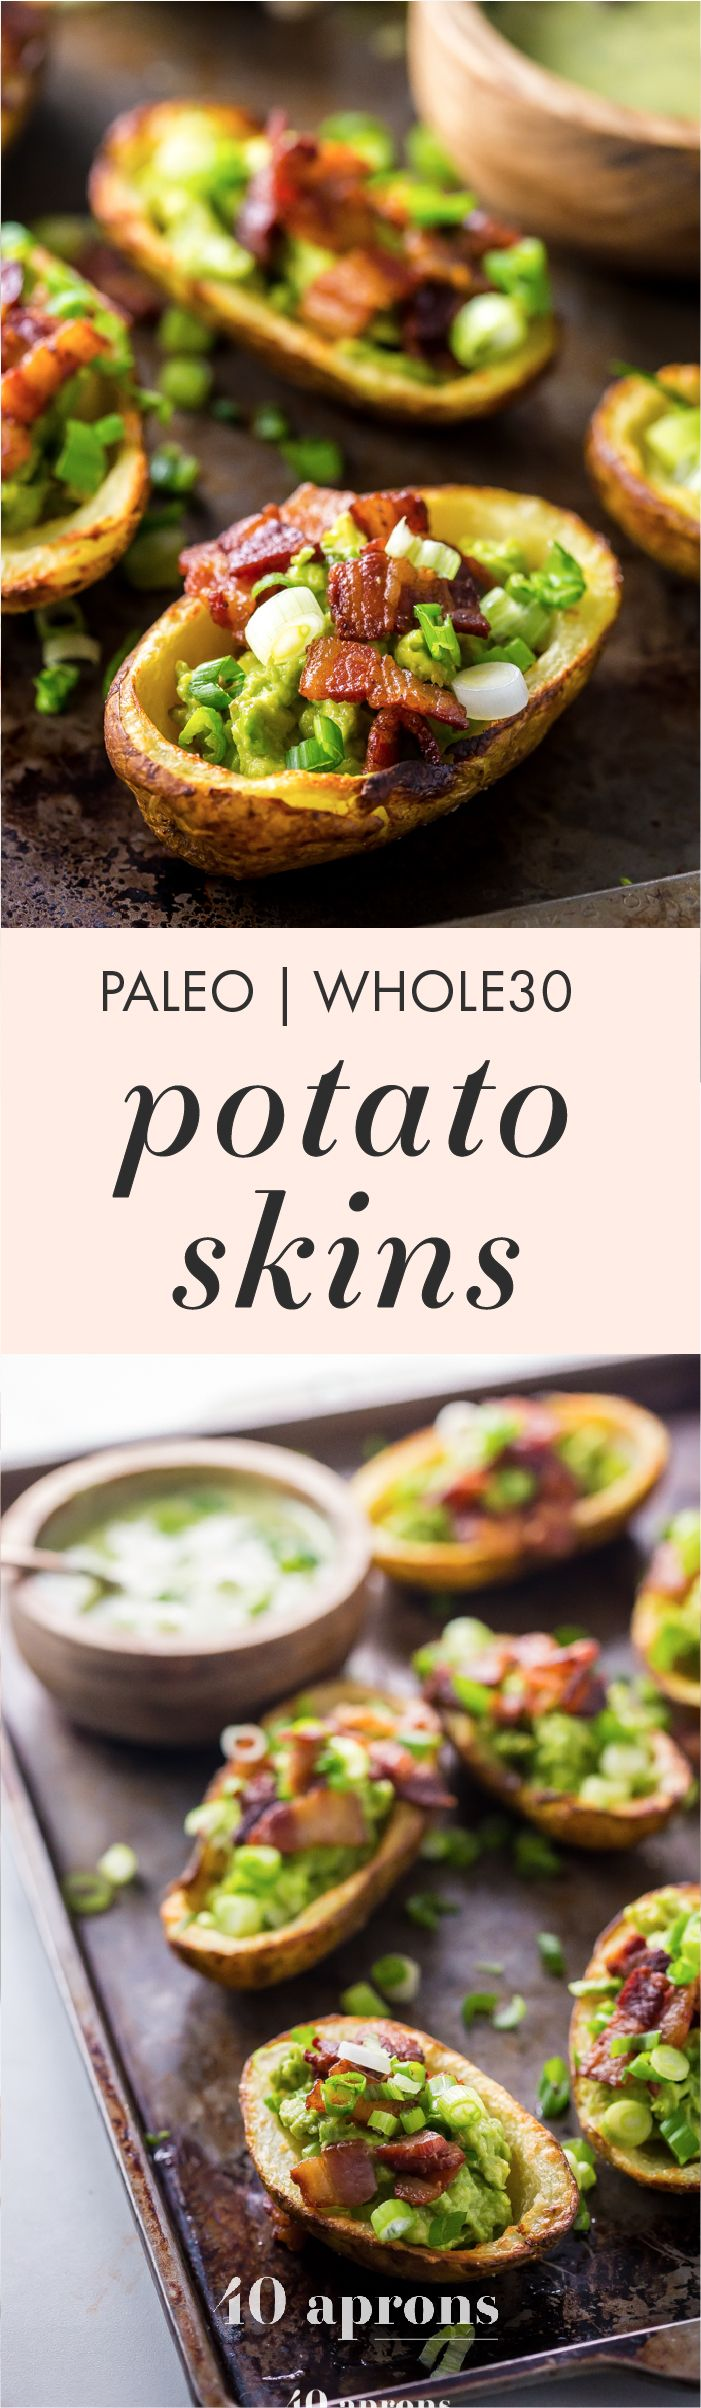 These paleo potato skins are seriously perfect paleo tailgate food. These paleo potato skins are super crispy and easy to make, loaded with a quick guacamole, crispy bacon, green onions, and ranch dressing. Yep, these Whole30 potato skins areperfect alongside buffalo wings and beer, and they'll quickly become your favorite paleo tailgate food.